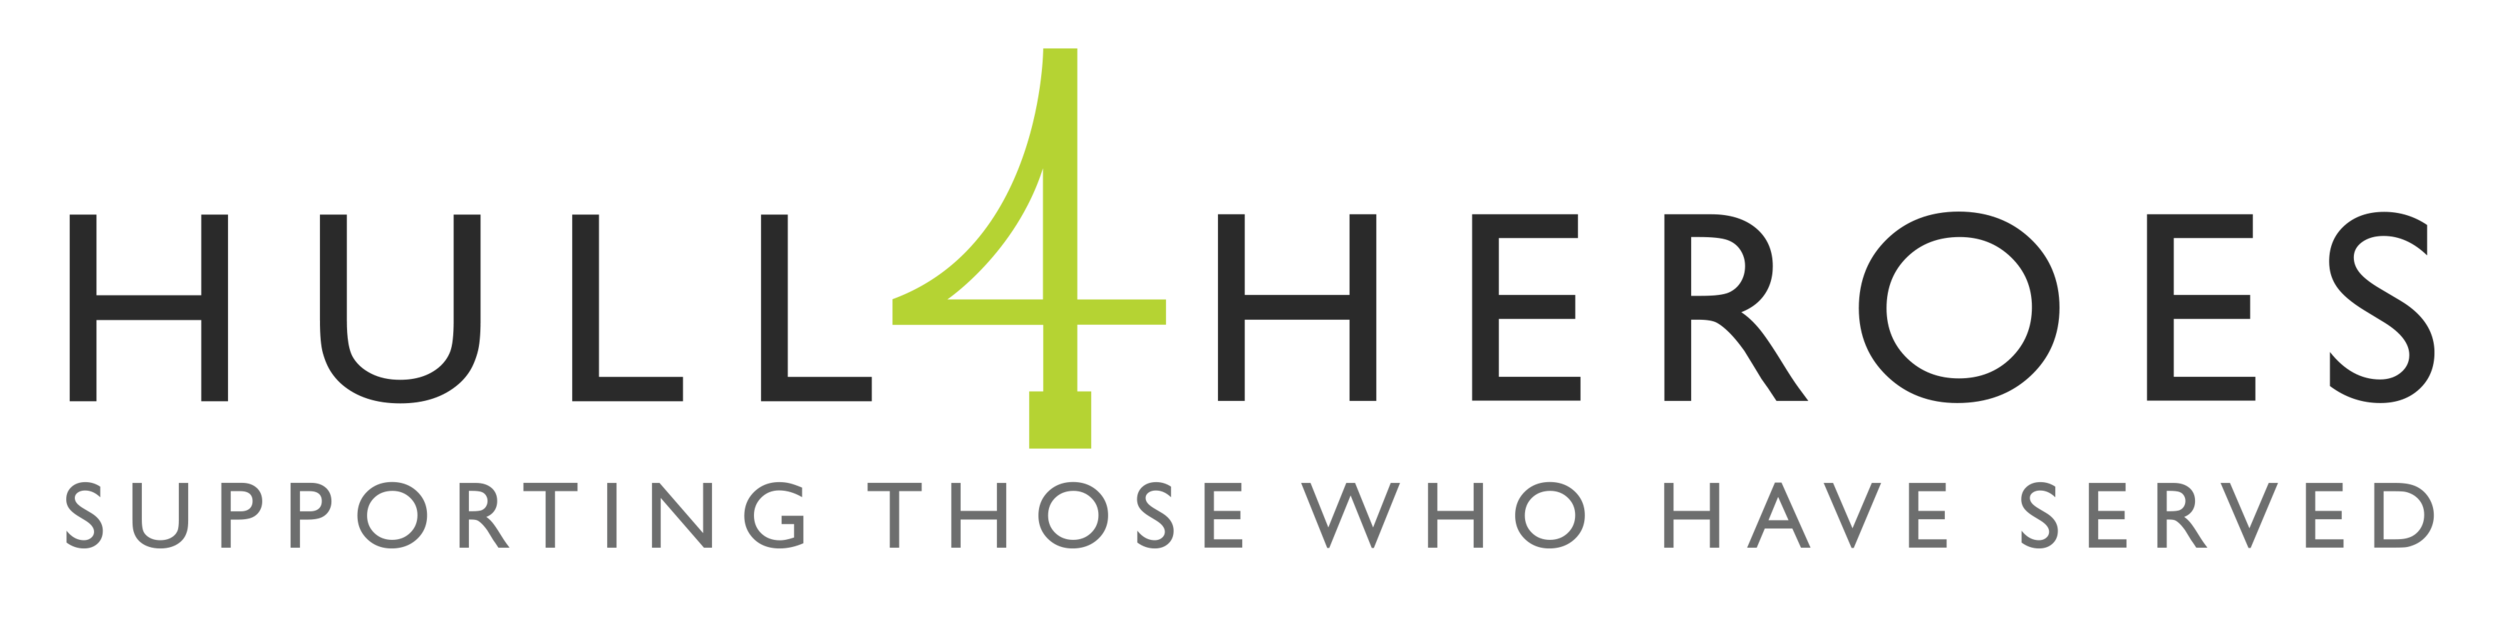 hull_4_heroes_logo_light_large.png